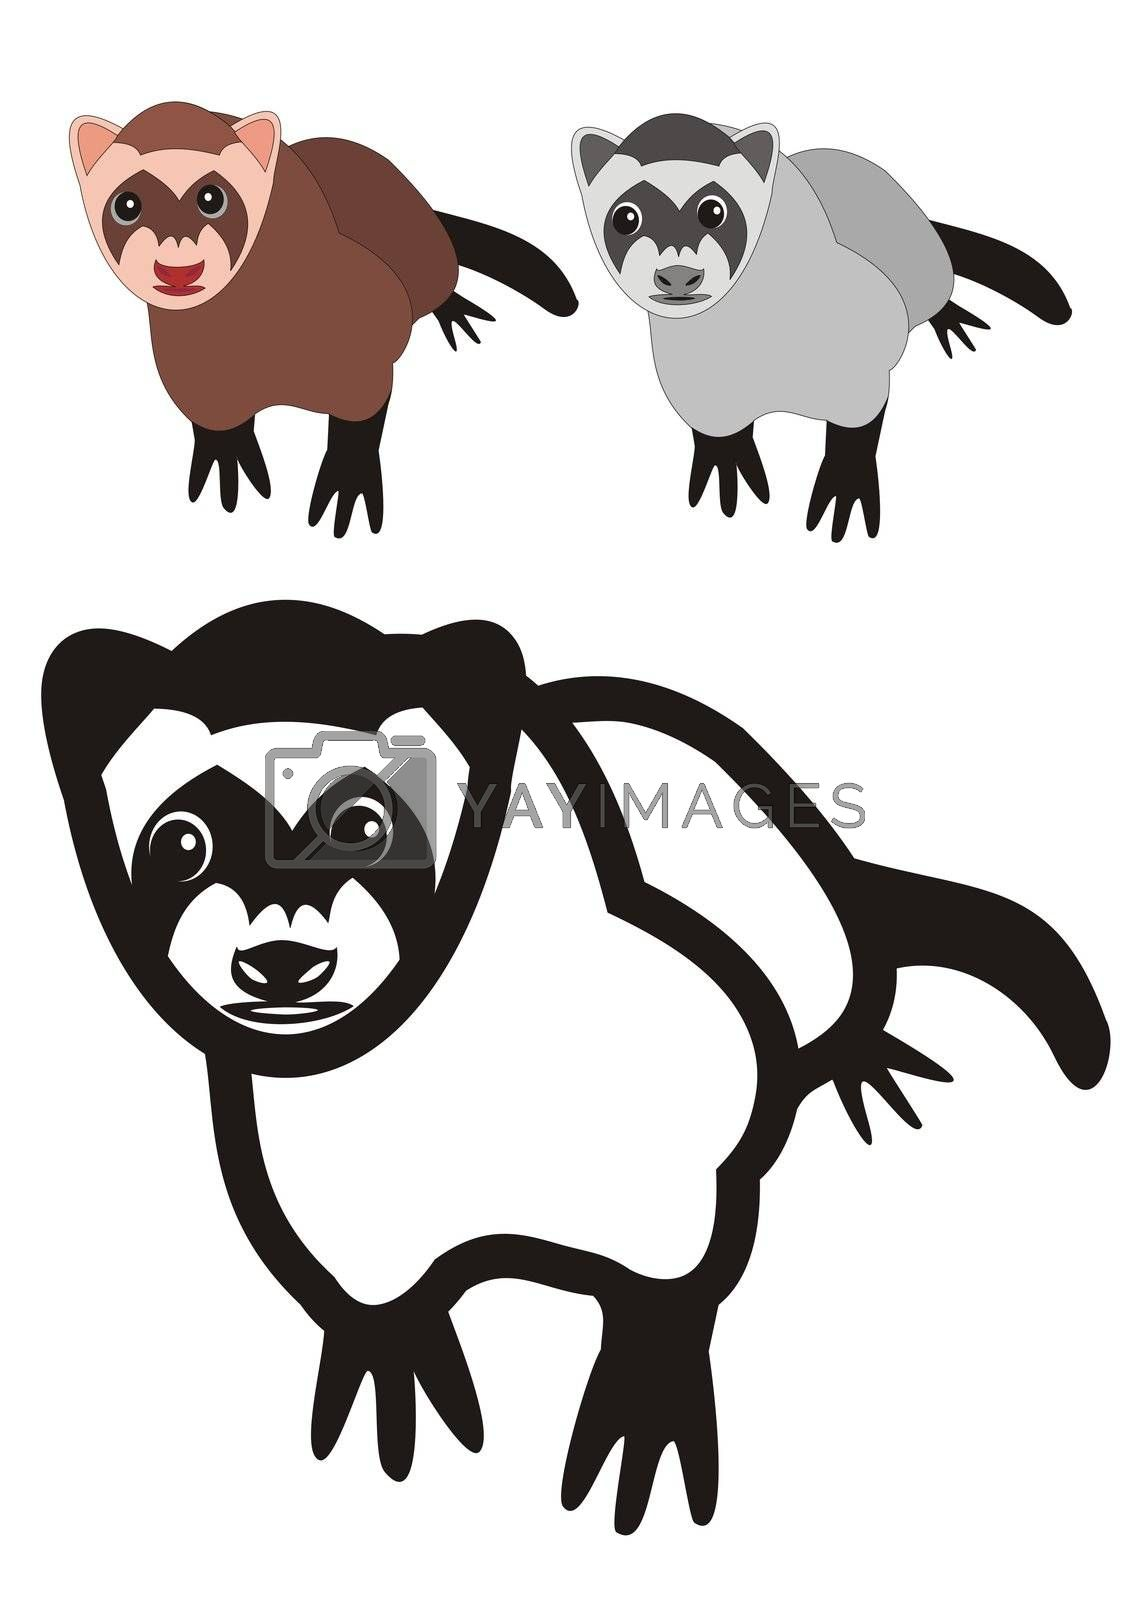 illustration of a ferret, black outlines, grayscale and color.